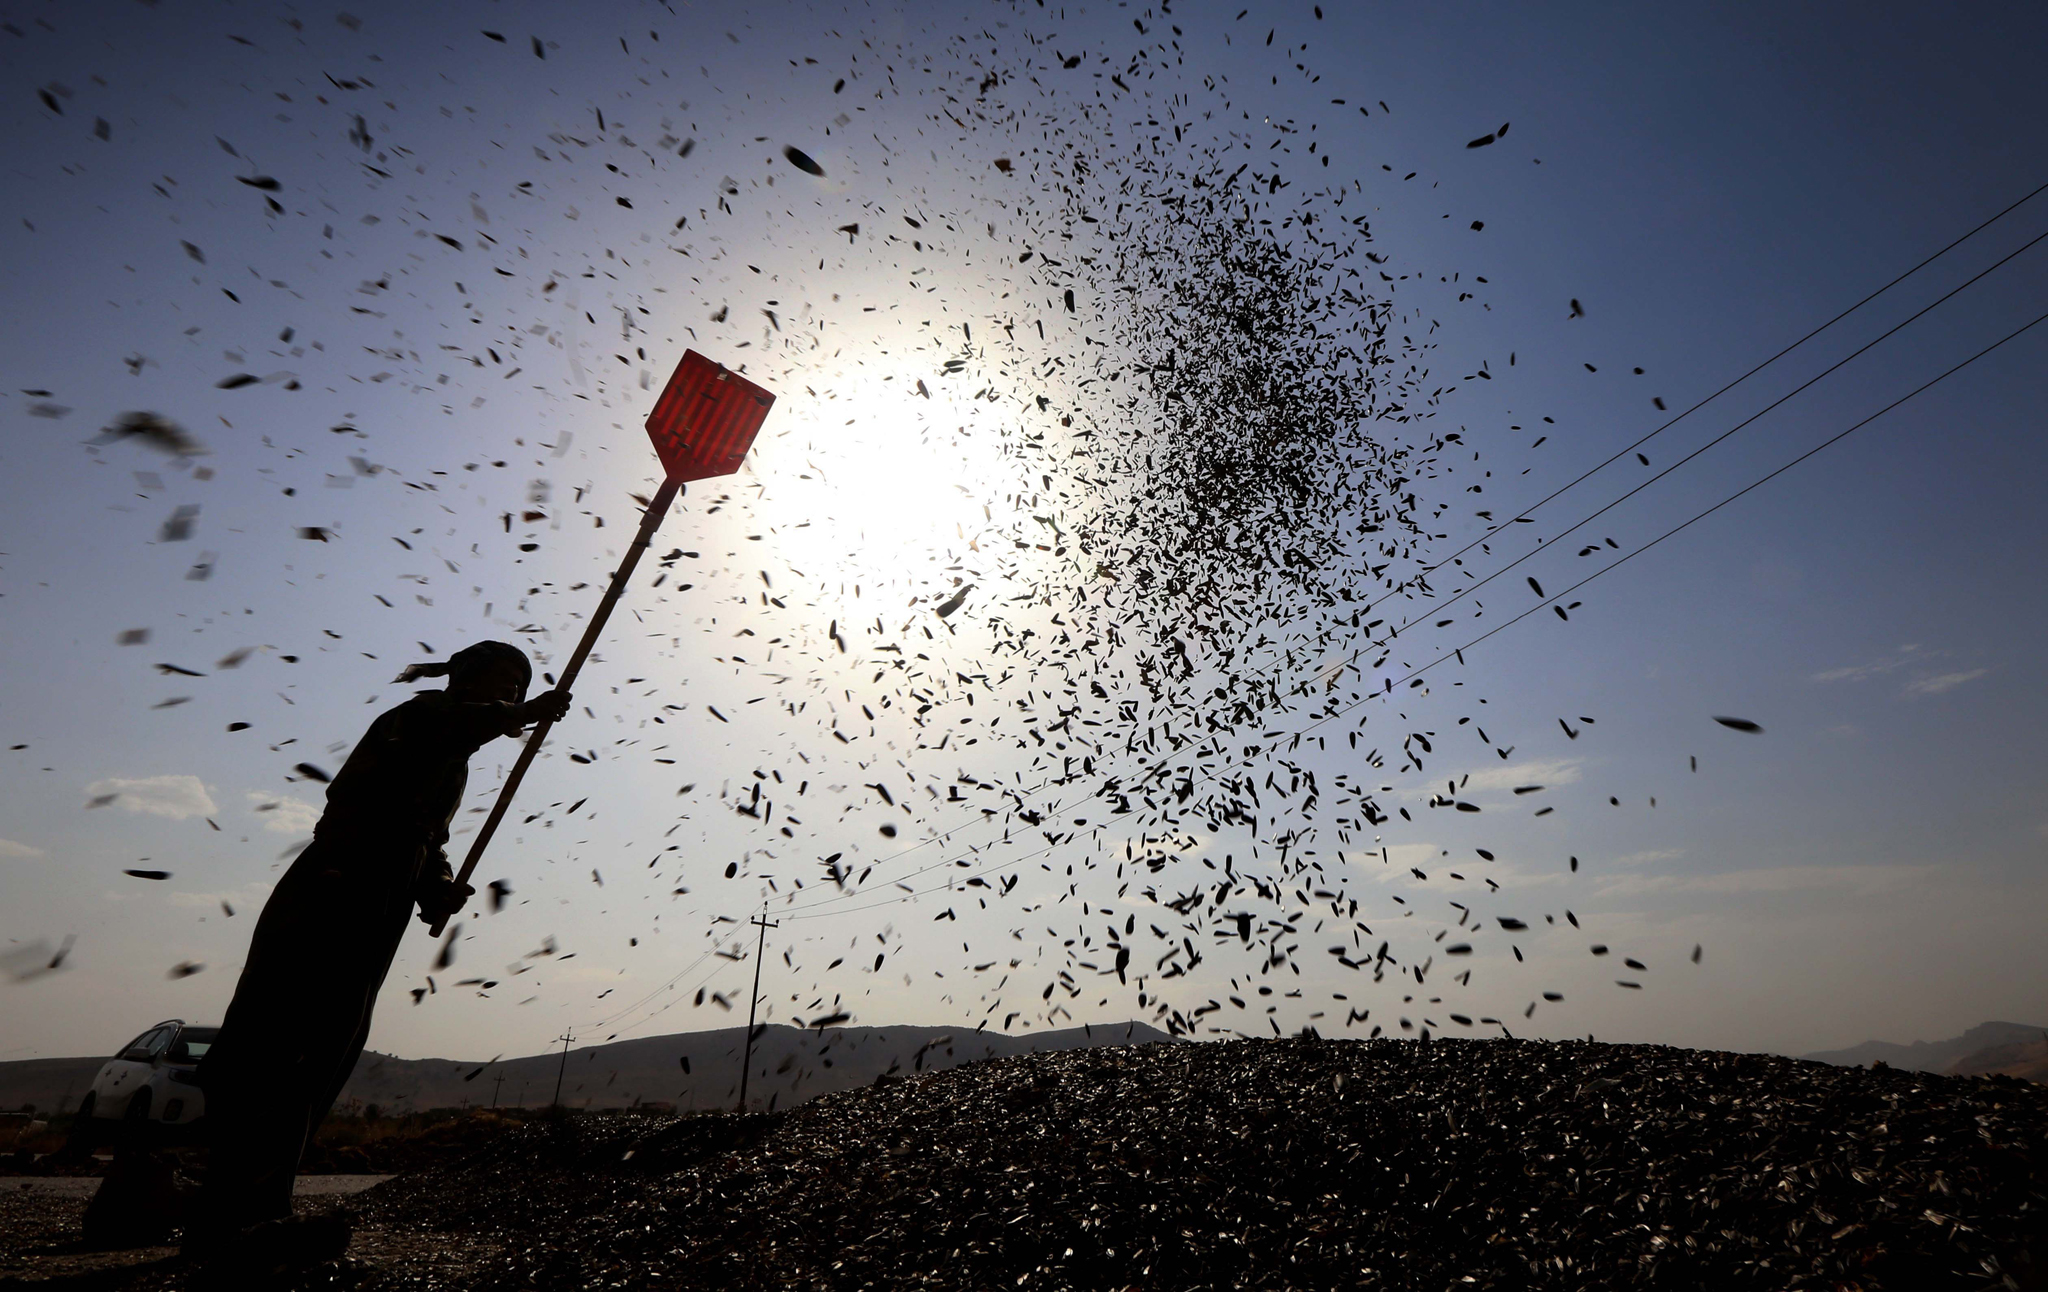 A Kurdish man harvests sunflowers in the district of Rania, 145km east of northern Iraq's Kurdish city of Sulaimaniyah